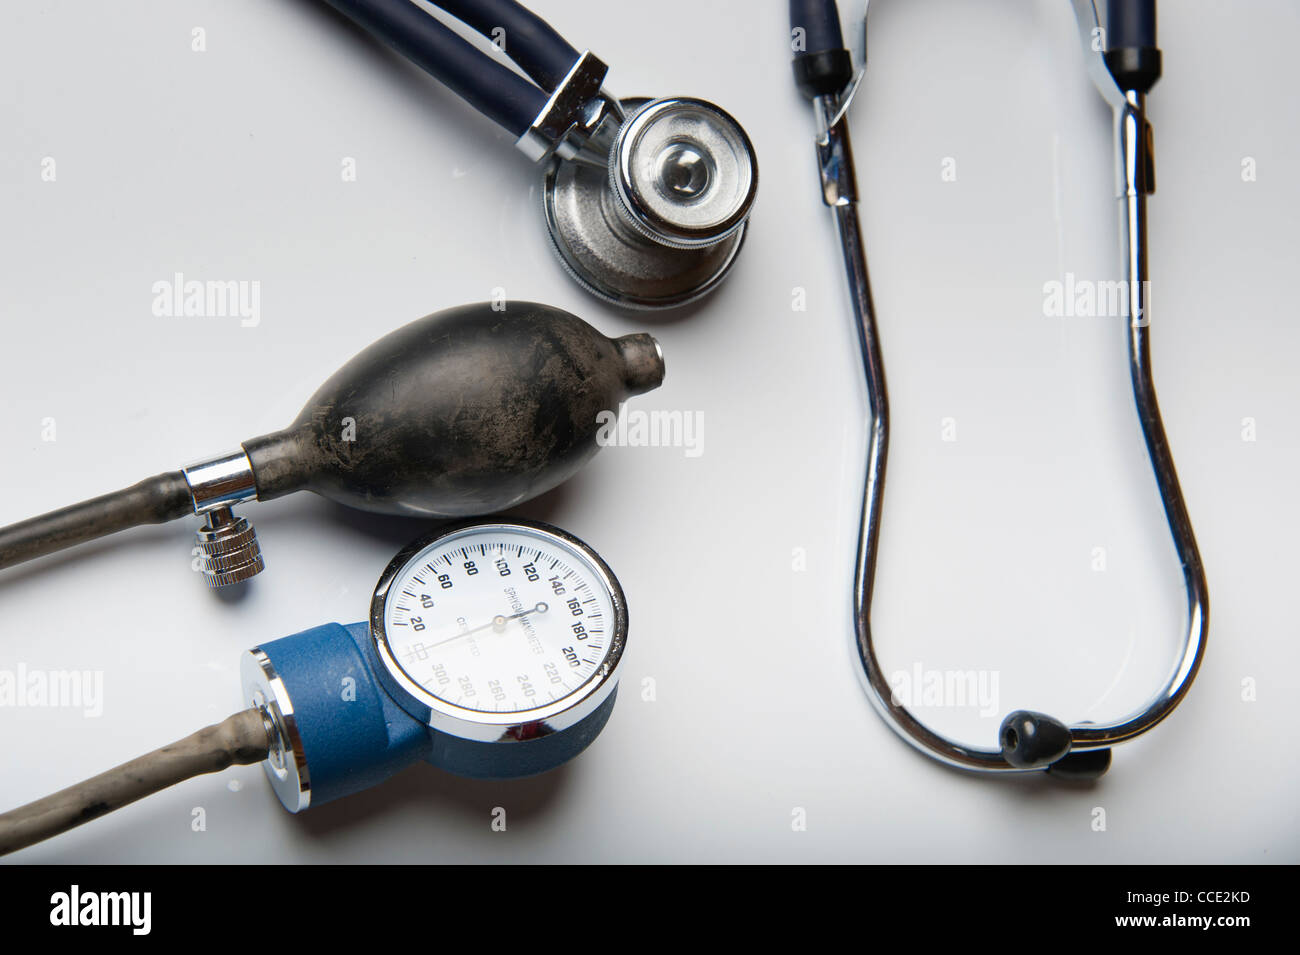 Sphygmomanometer and stethoscope - Stock Image